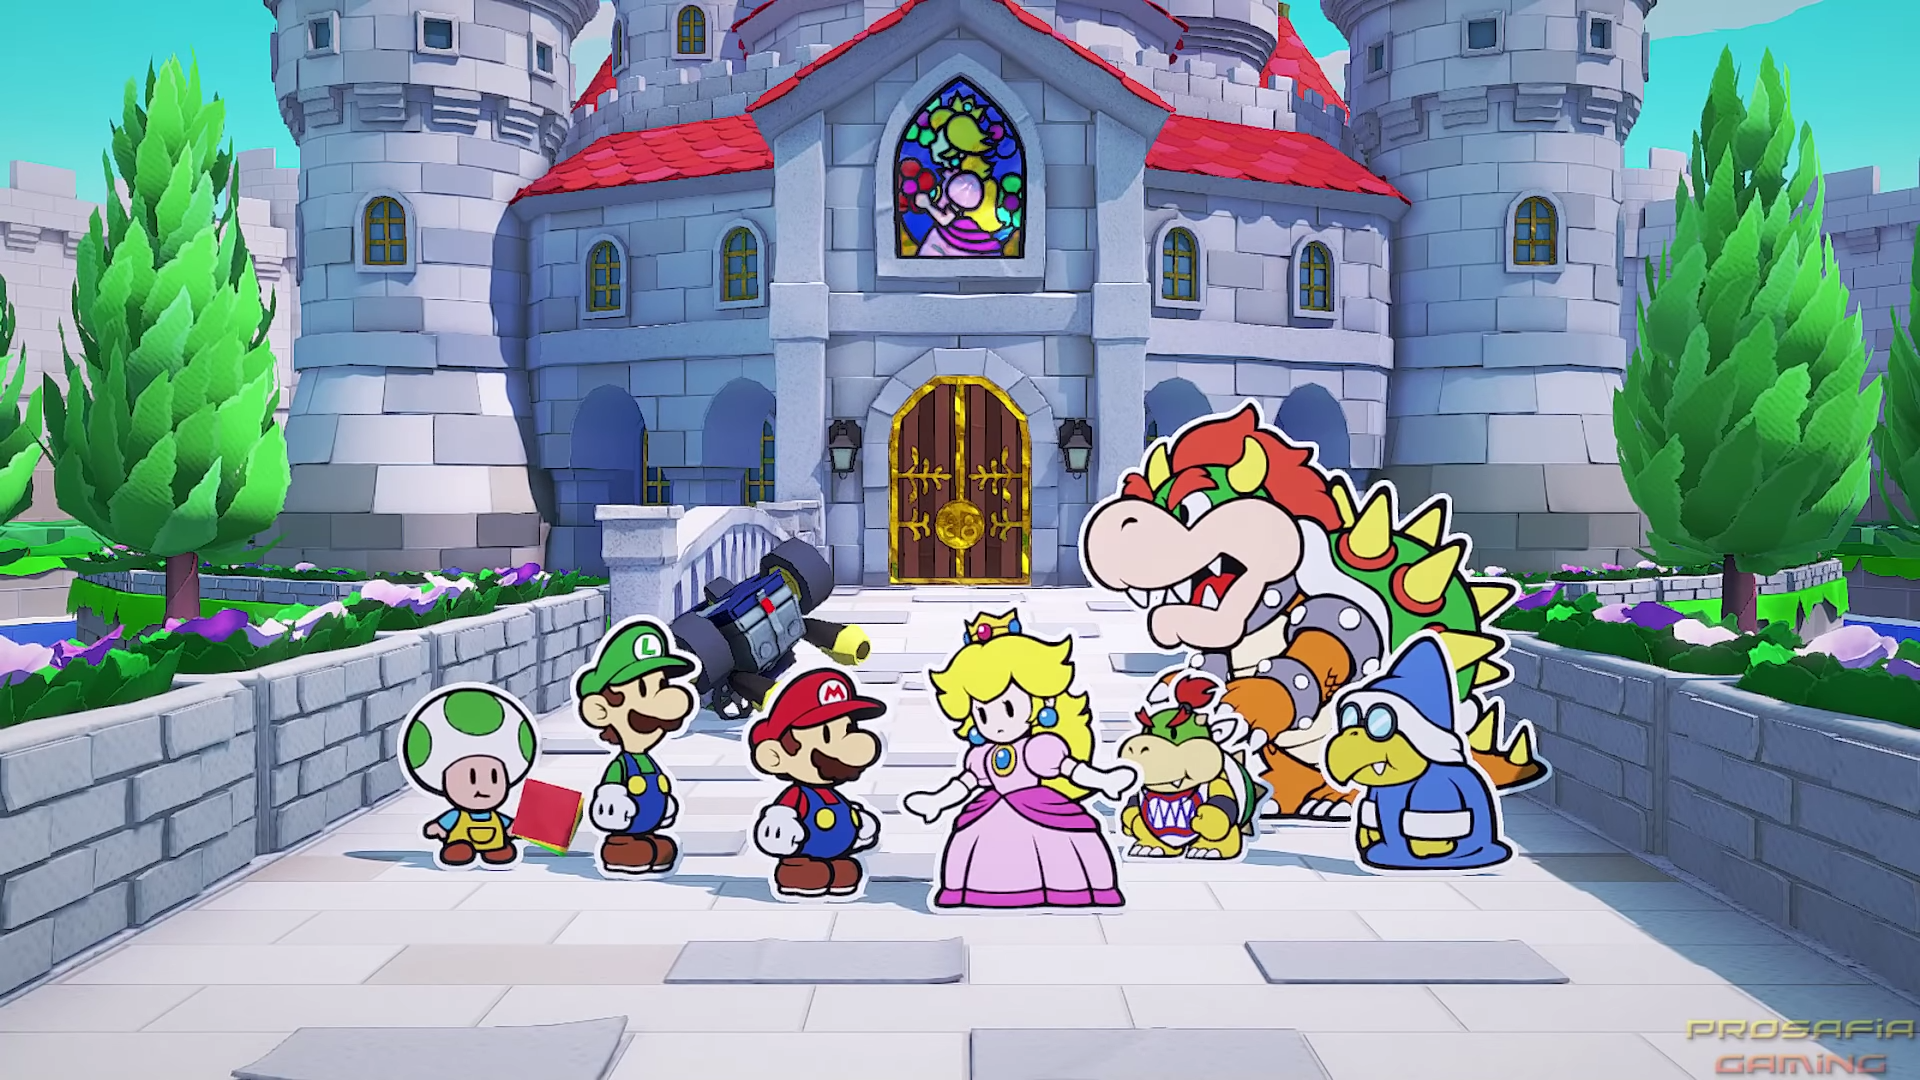 The Mario gang gathers in front of Peach's Castle to talk about what went down.